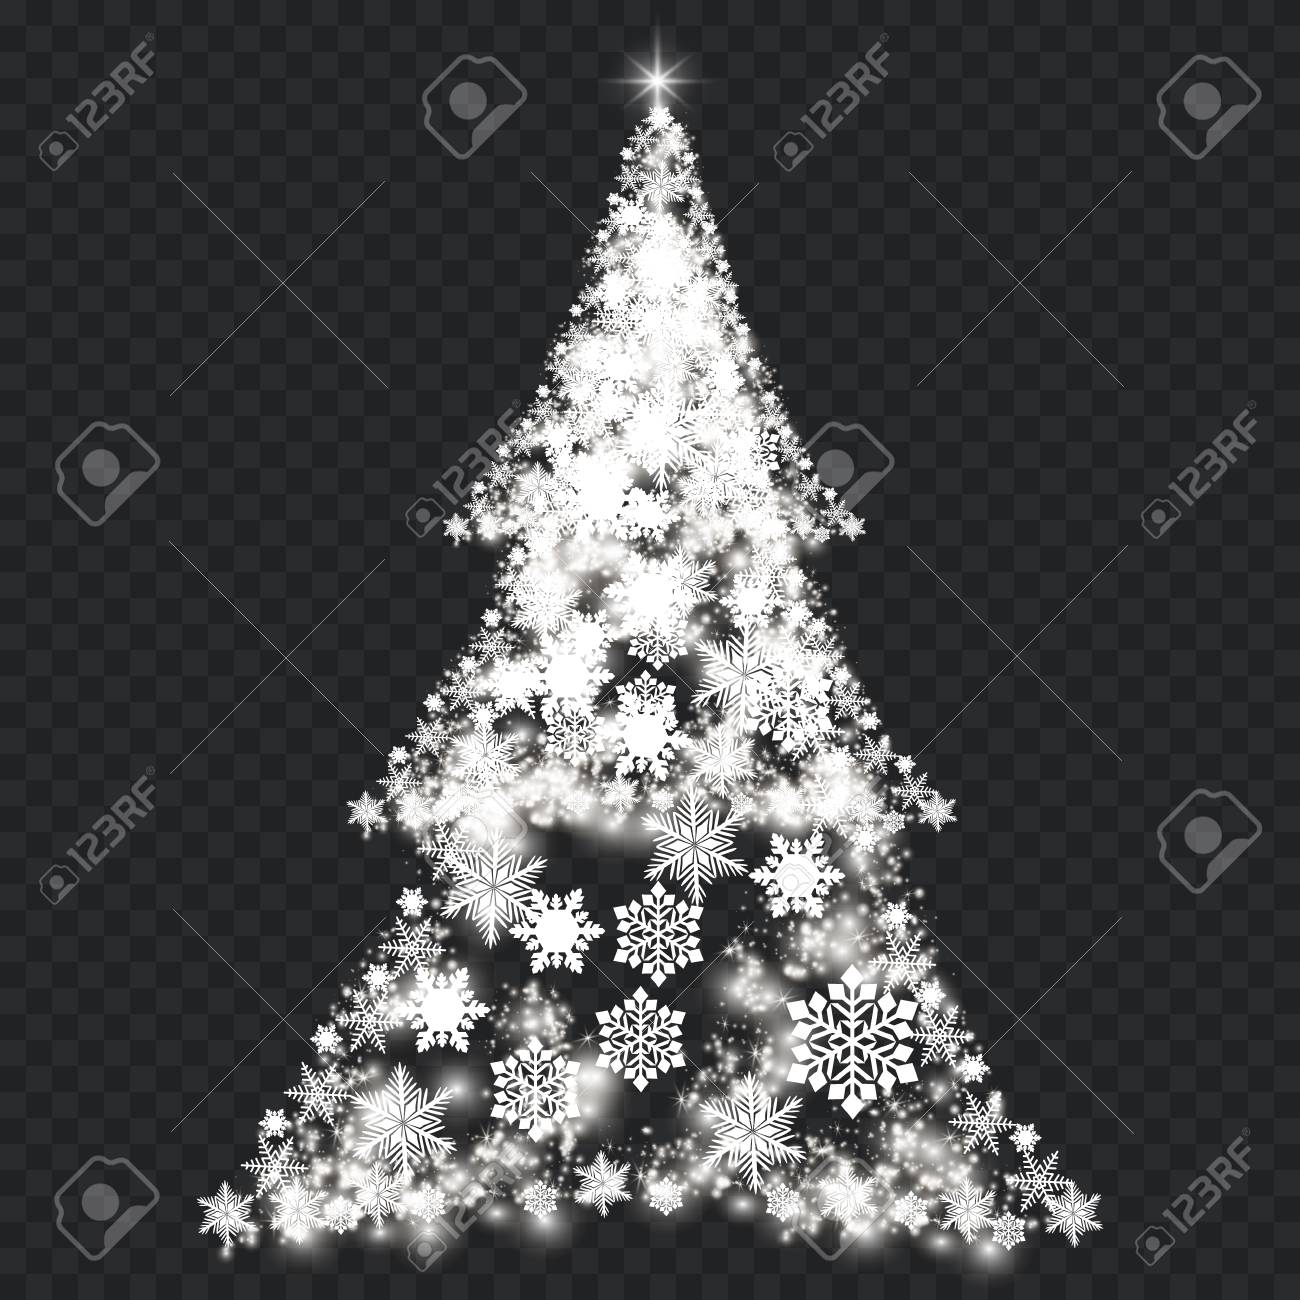 silver christmas tree on transparent background royalty free cliparts vectors and stock illustration image 88362885 silver christmas tree on transparent background